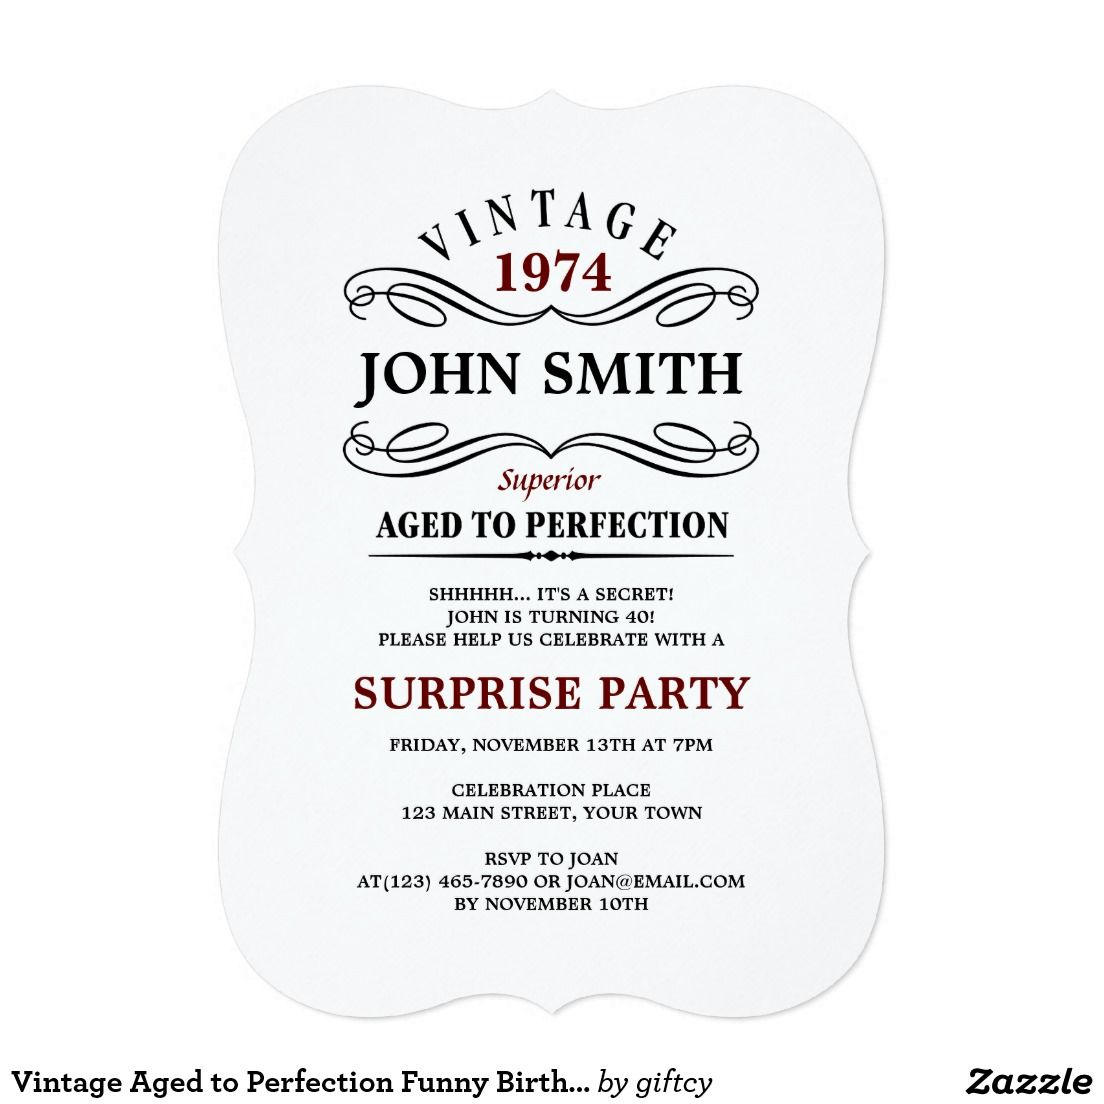 Vintage Aged to Perfection Funny Birthday Invite | Funny birthday ...